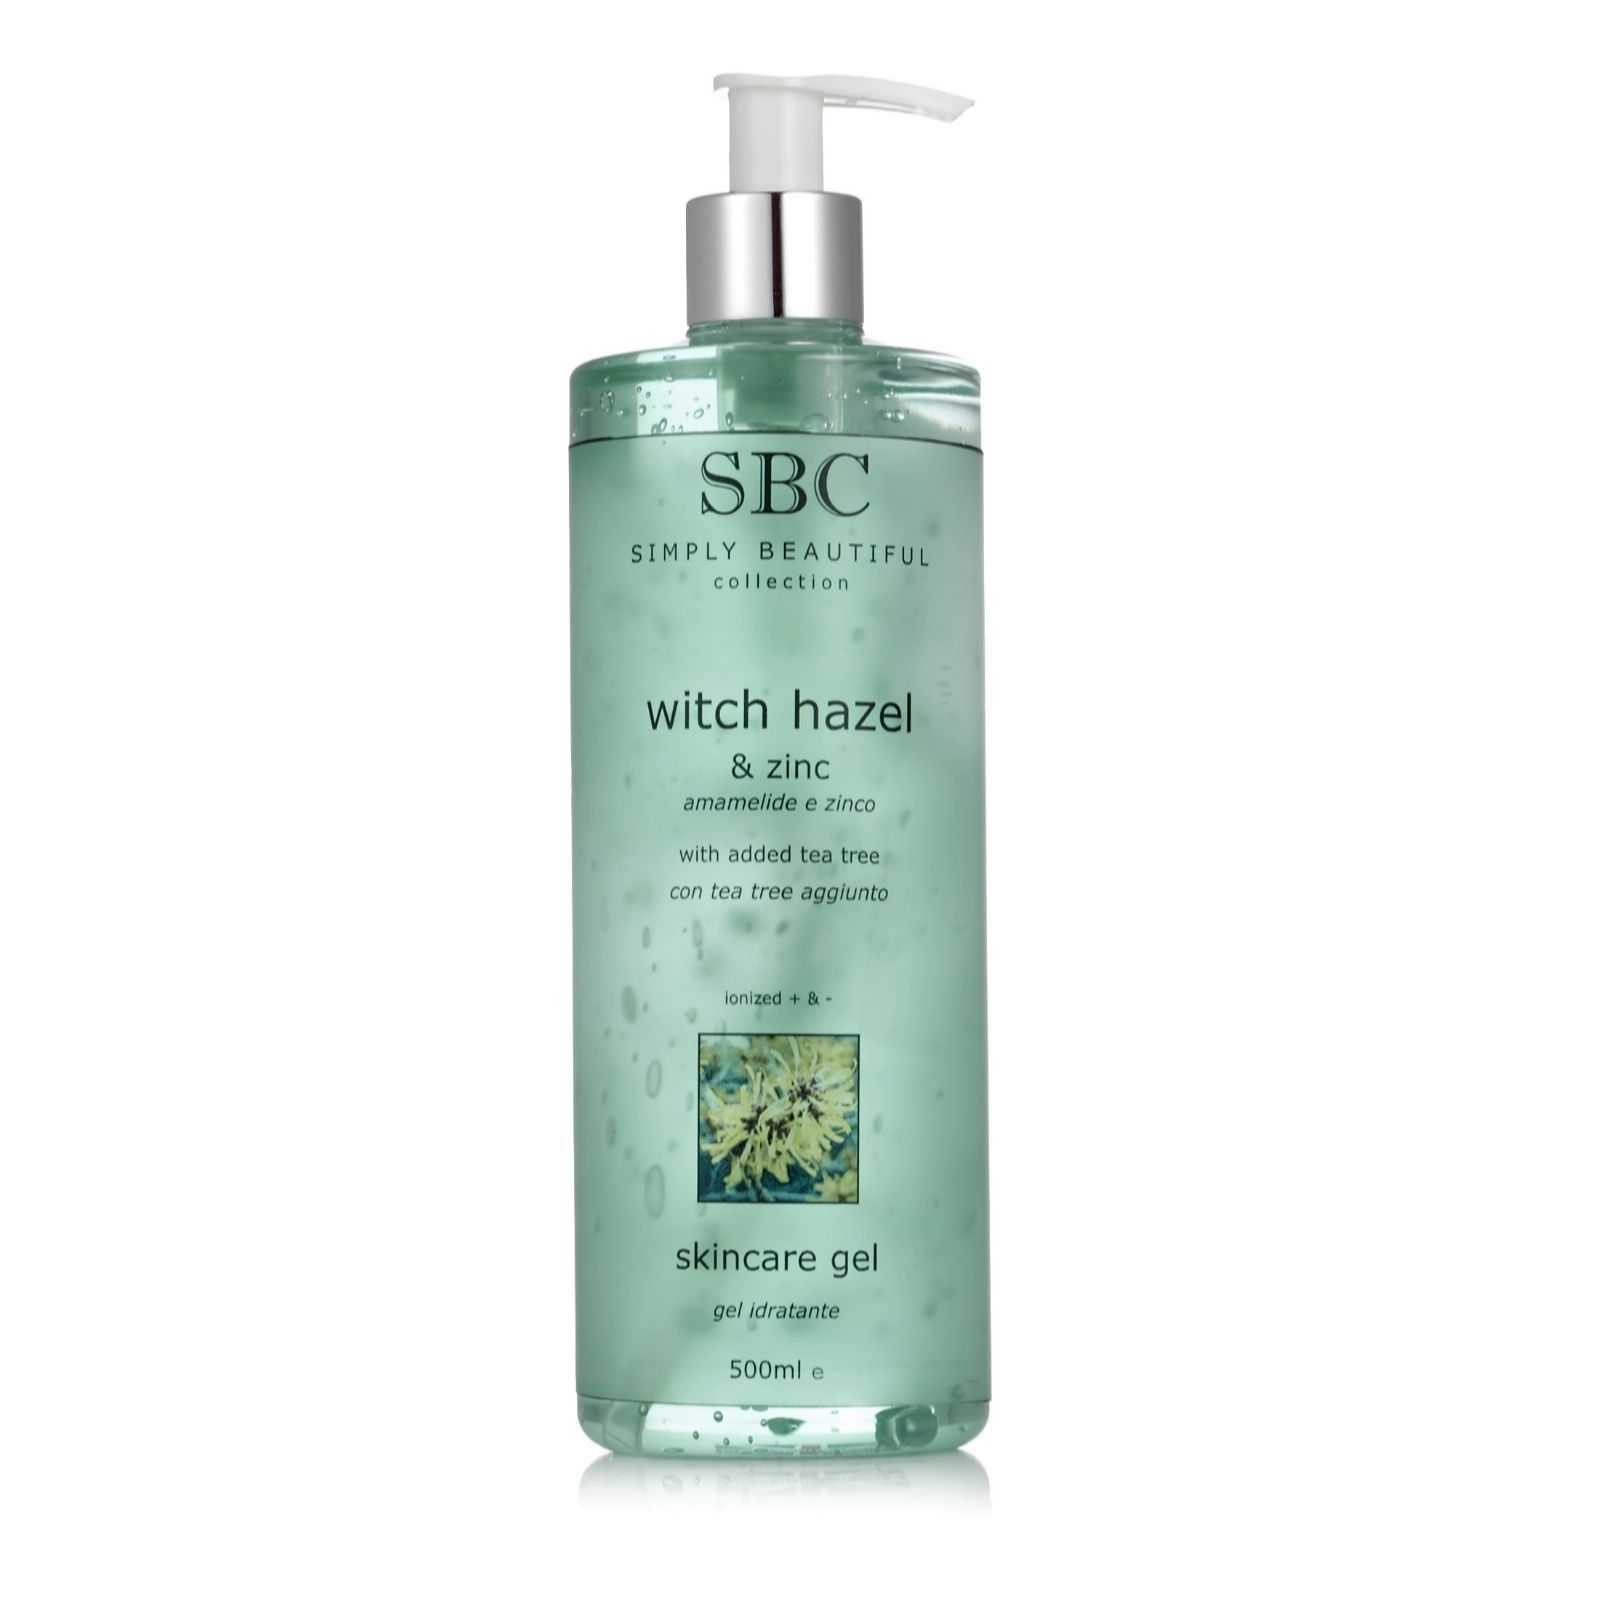 SBC Witch Hazel & Zinc Skincare Gel 500ml - Page 1 - QVC UK